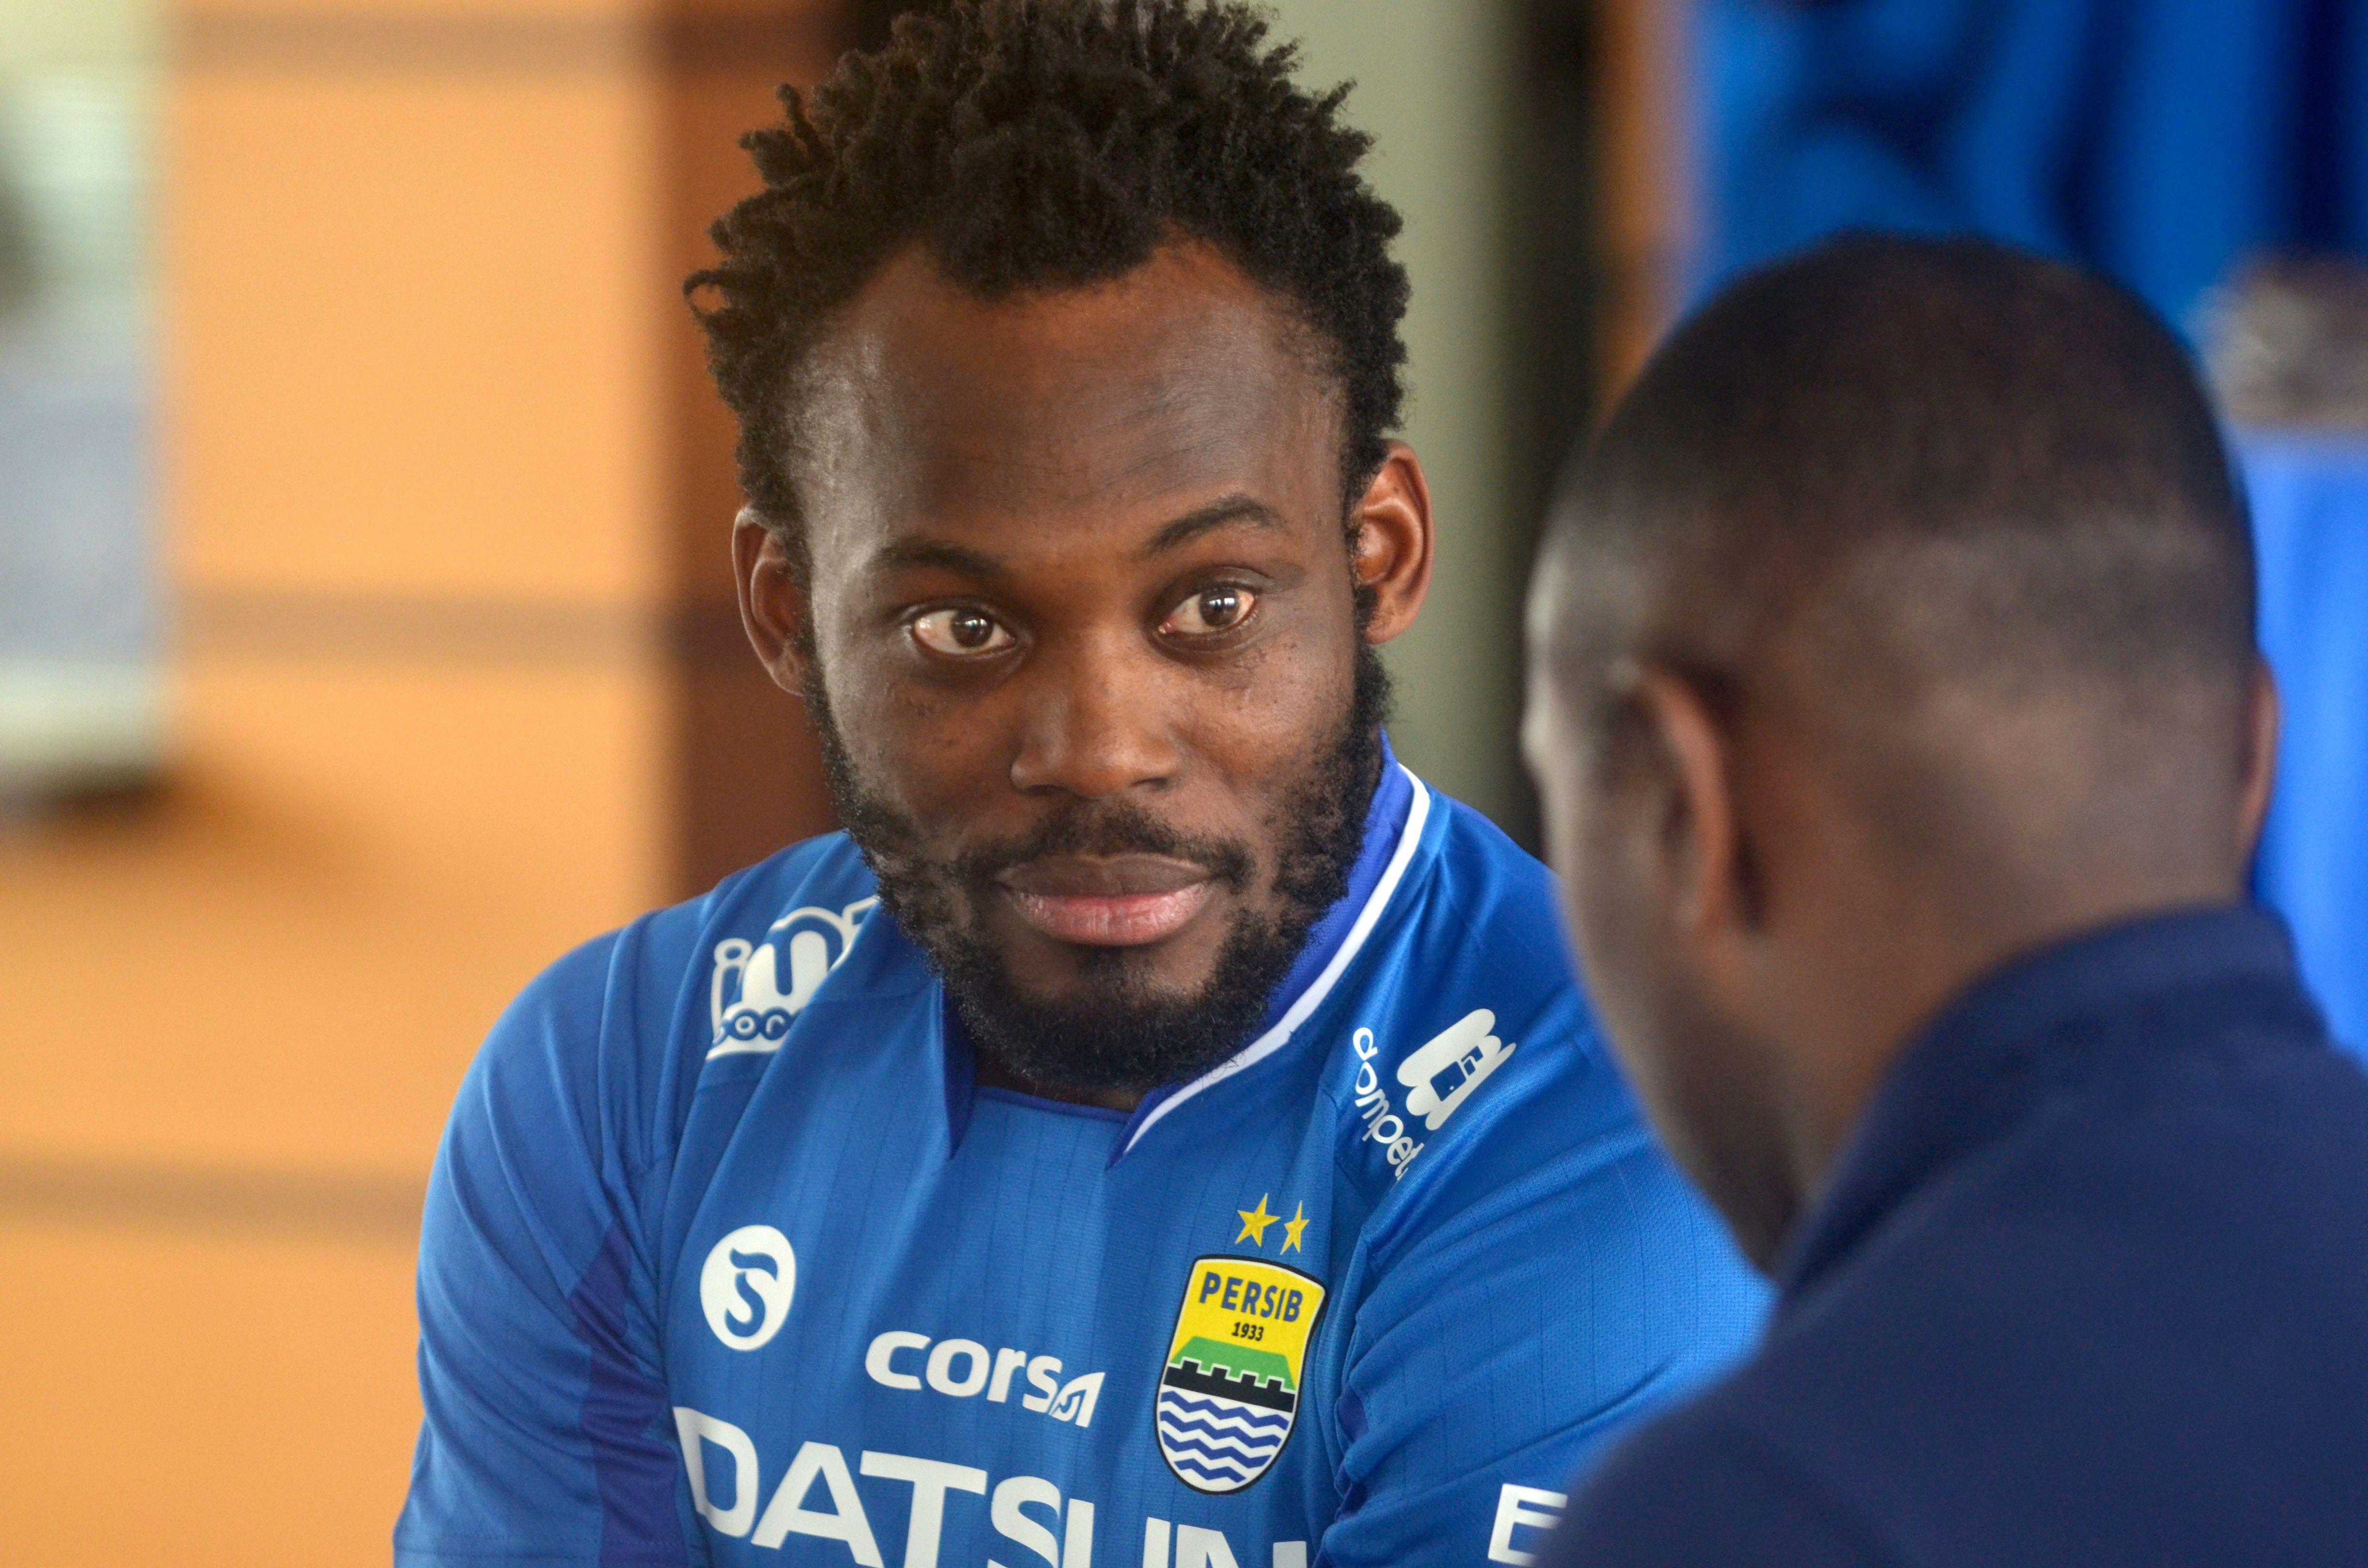 Ex-Chelsea man Michael Essien now plays for Indonesian side Persib Bandung